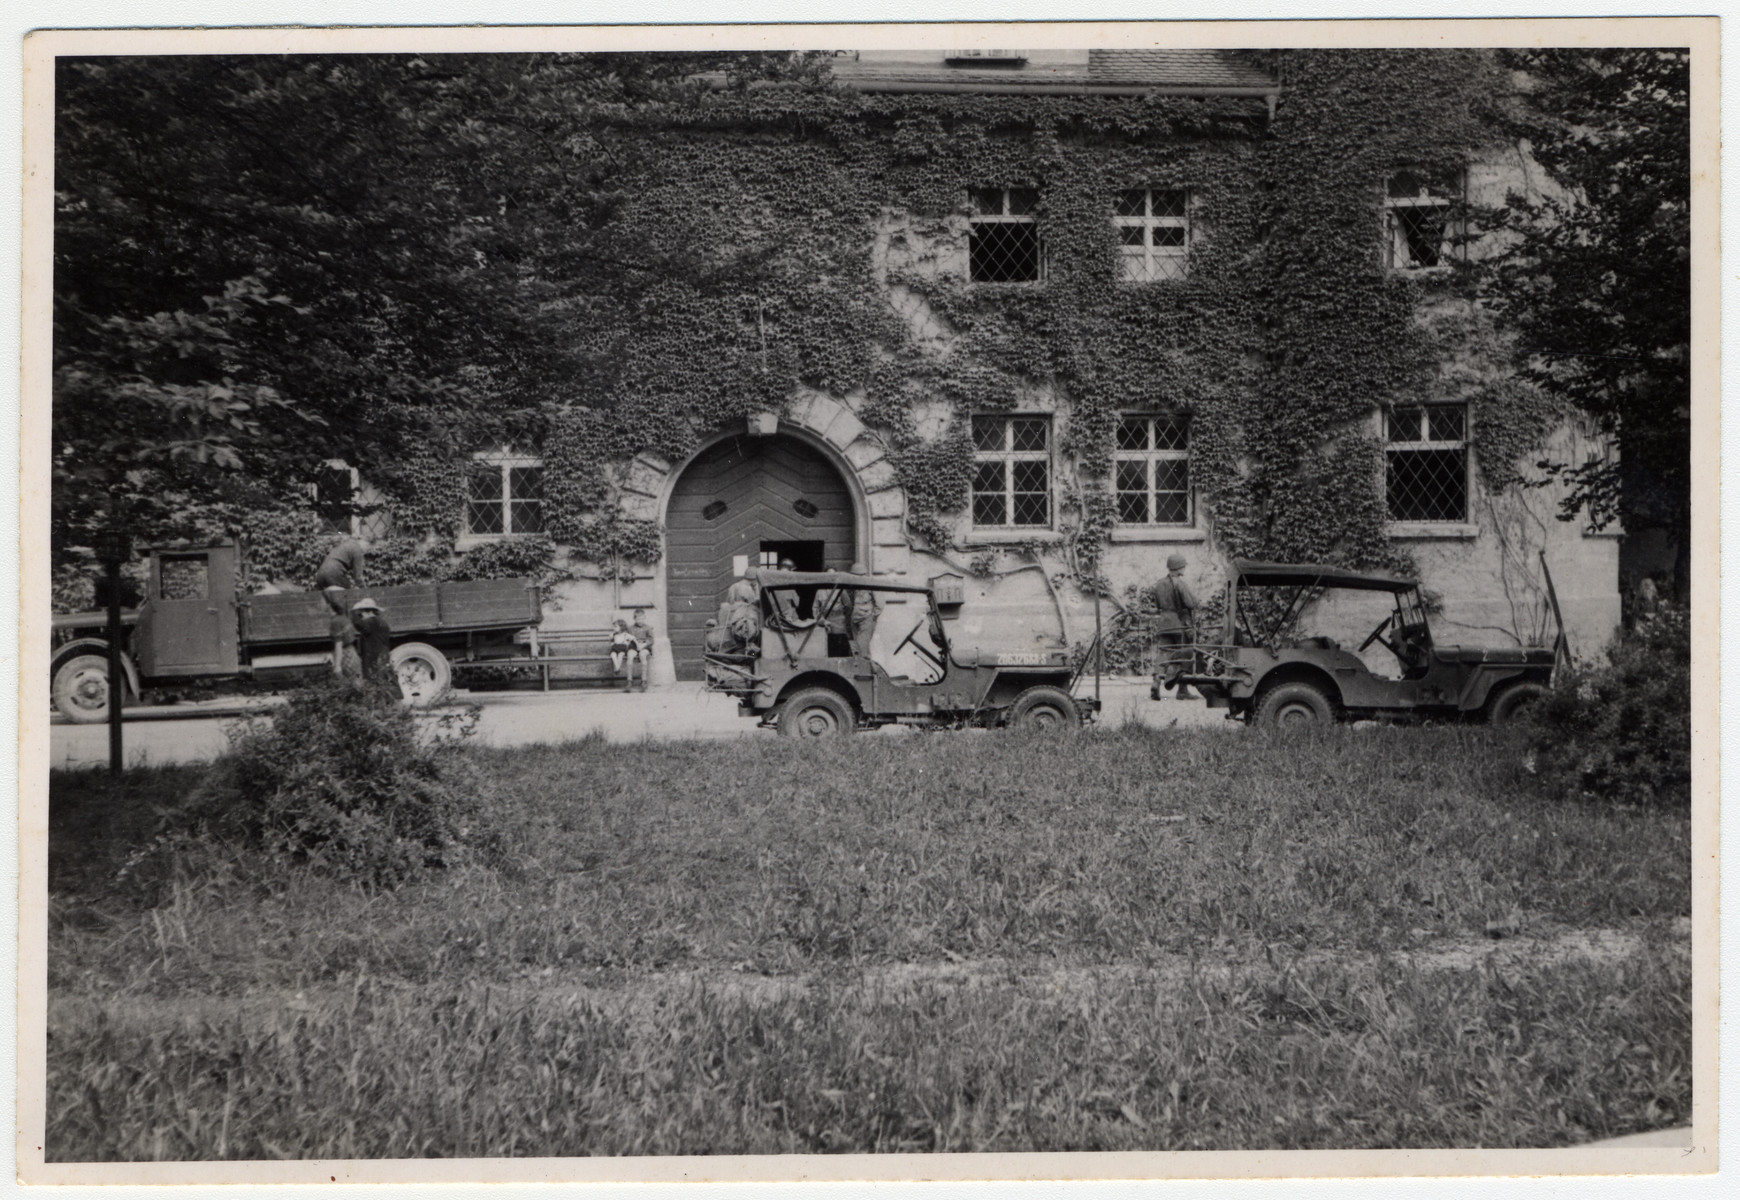 Exterior view of the front of the Landsberg prison with several military vehicles parked outside.